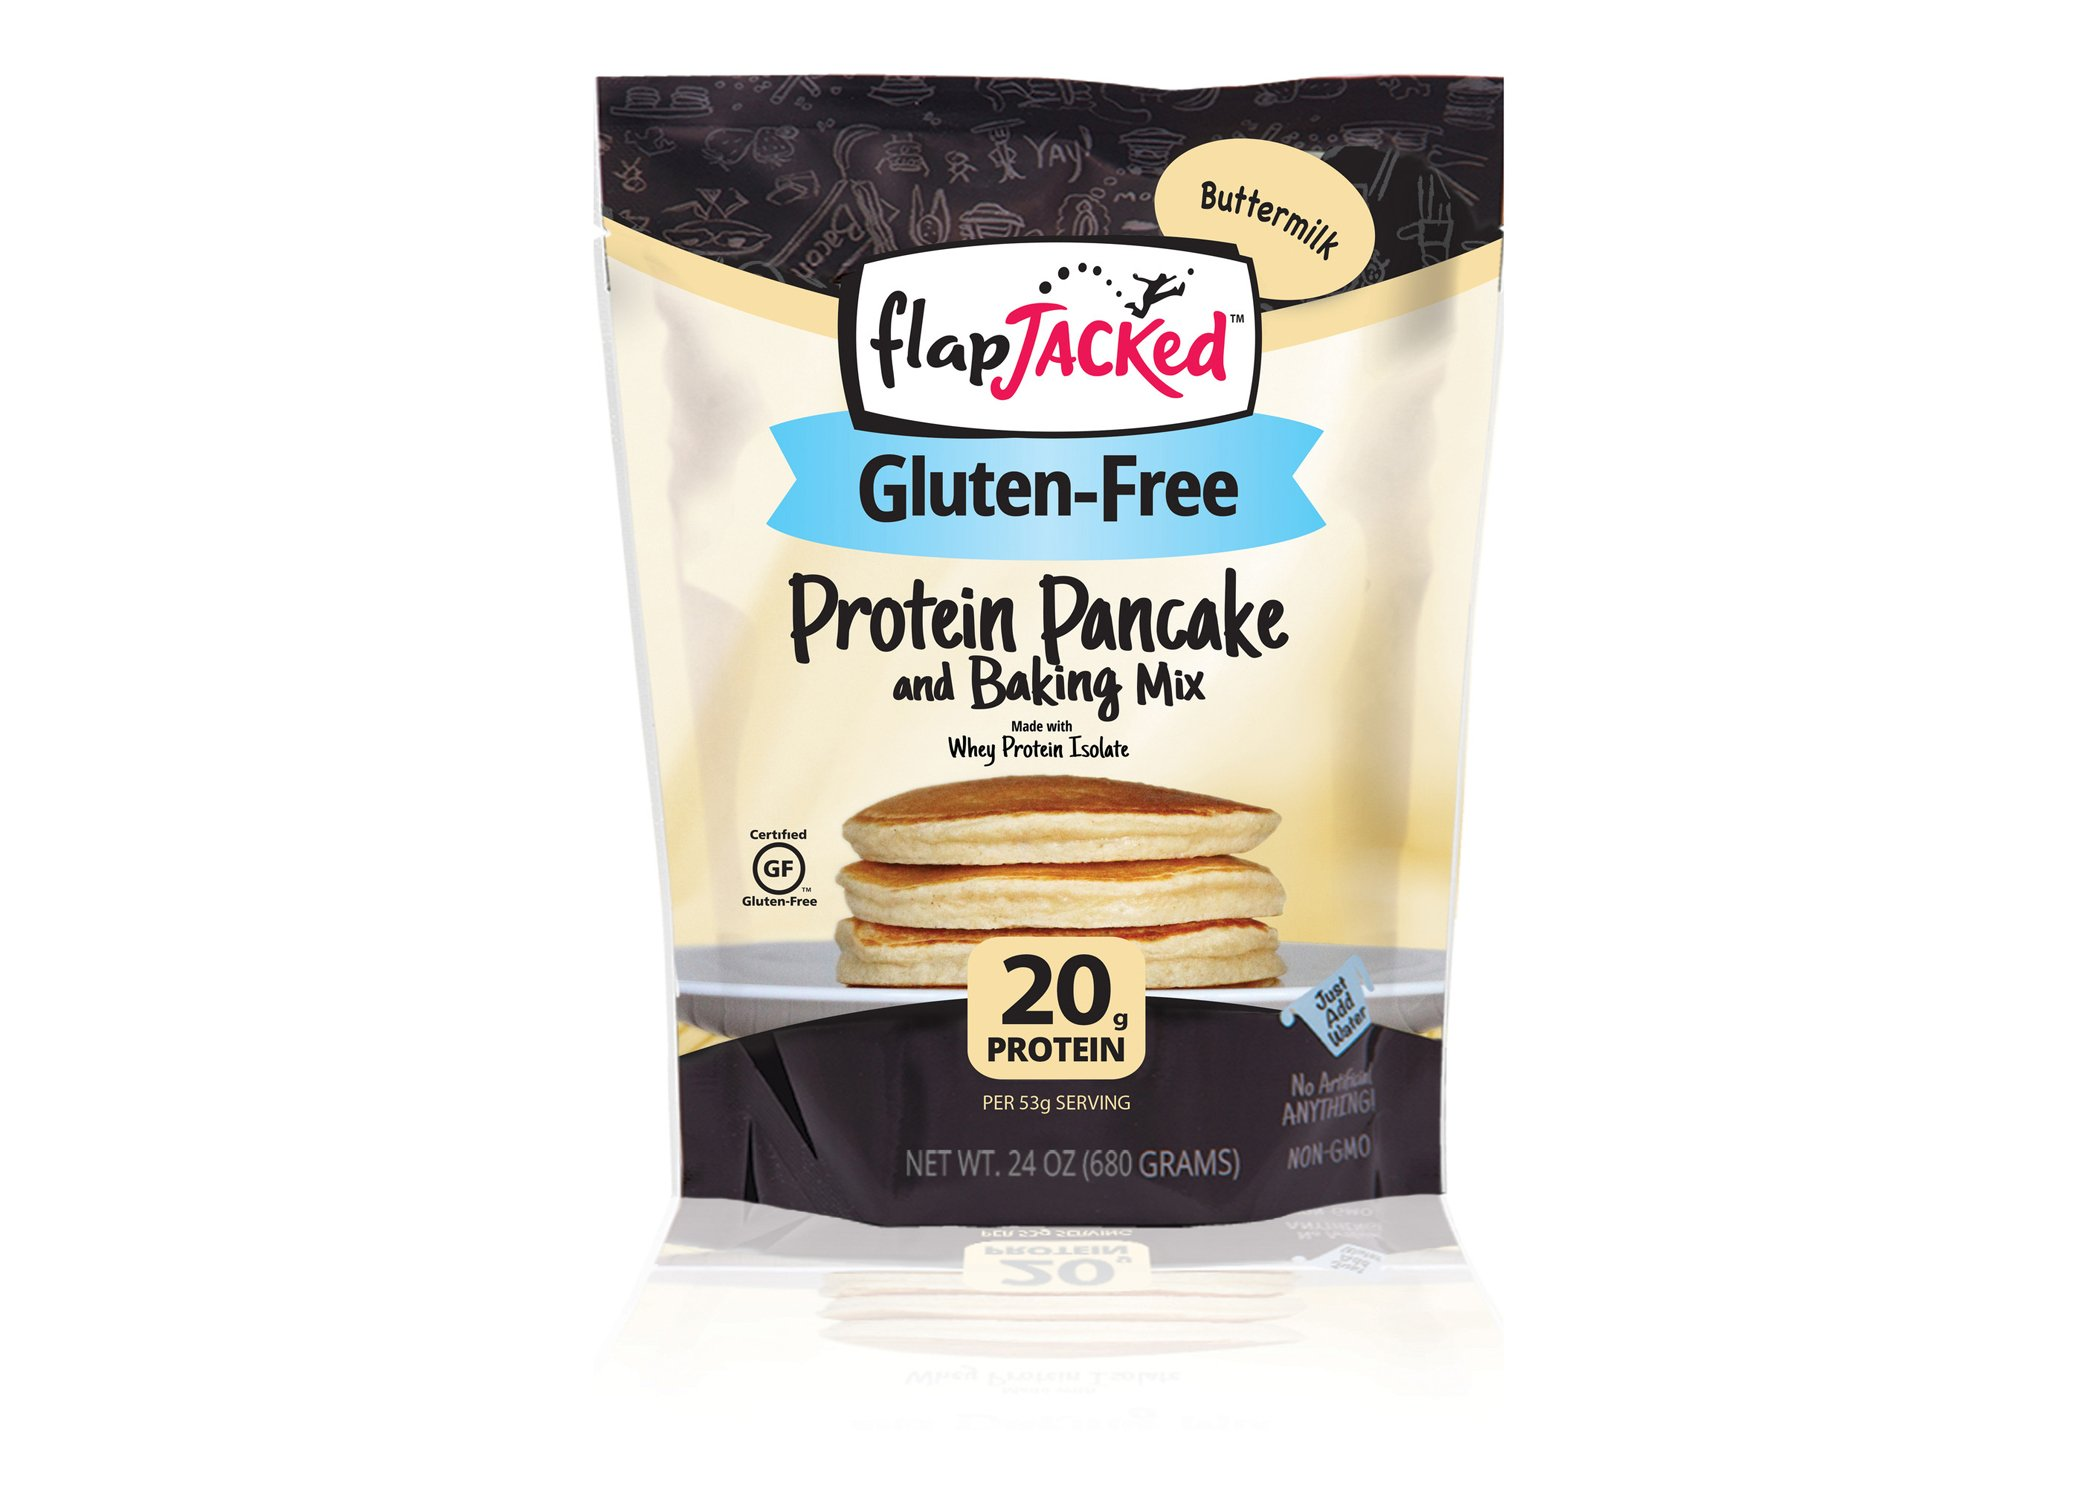 FlapJacked Gluten-Free Protein Pancake & Baking Mix, Buttermilk, 24oz by FlapJacked